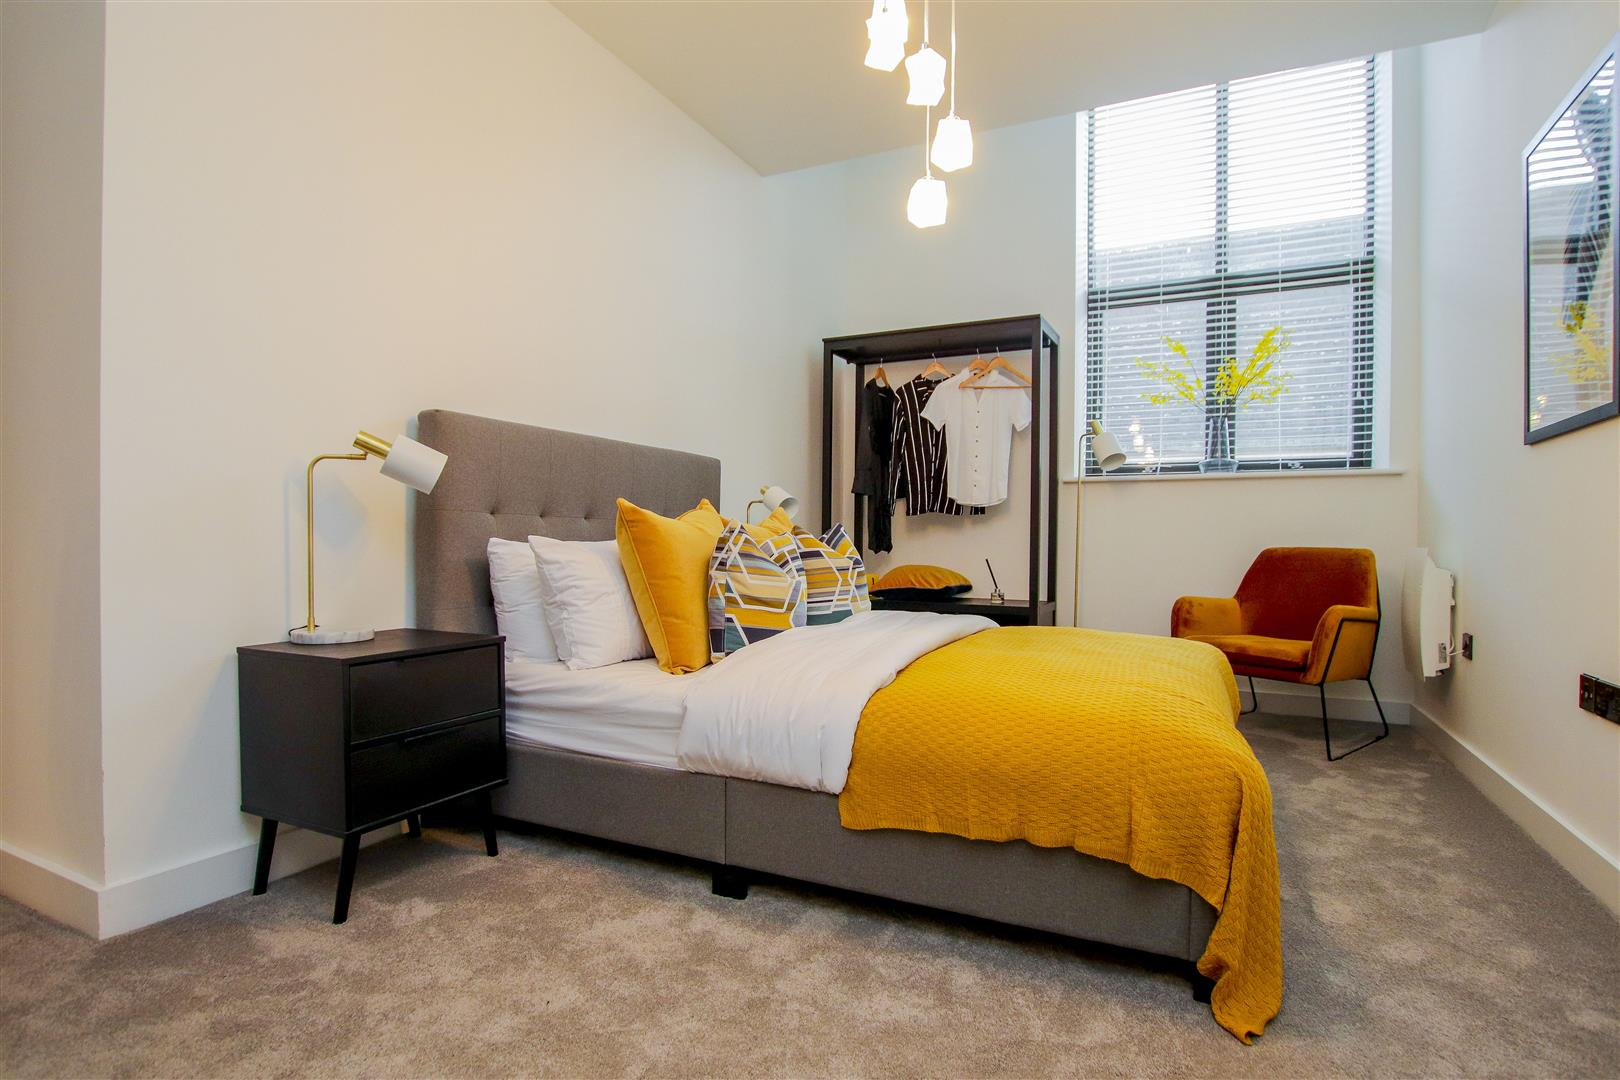 2 Bedroom Apartment For Sale - 20.JPG